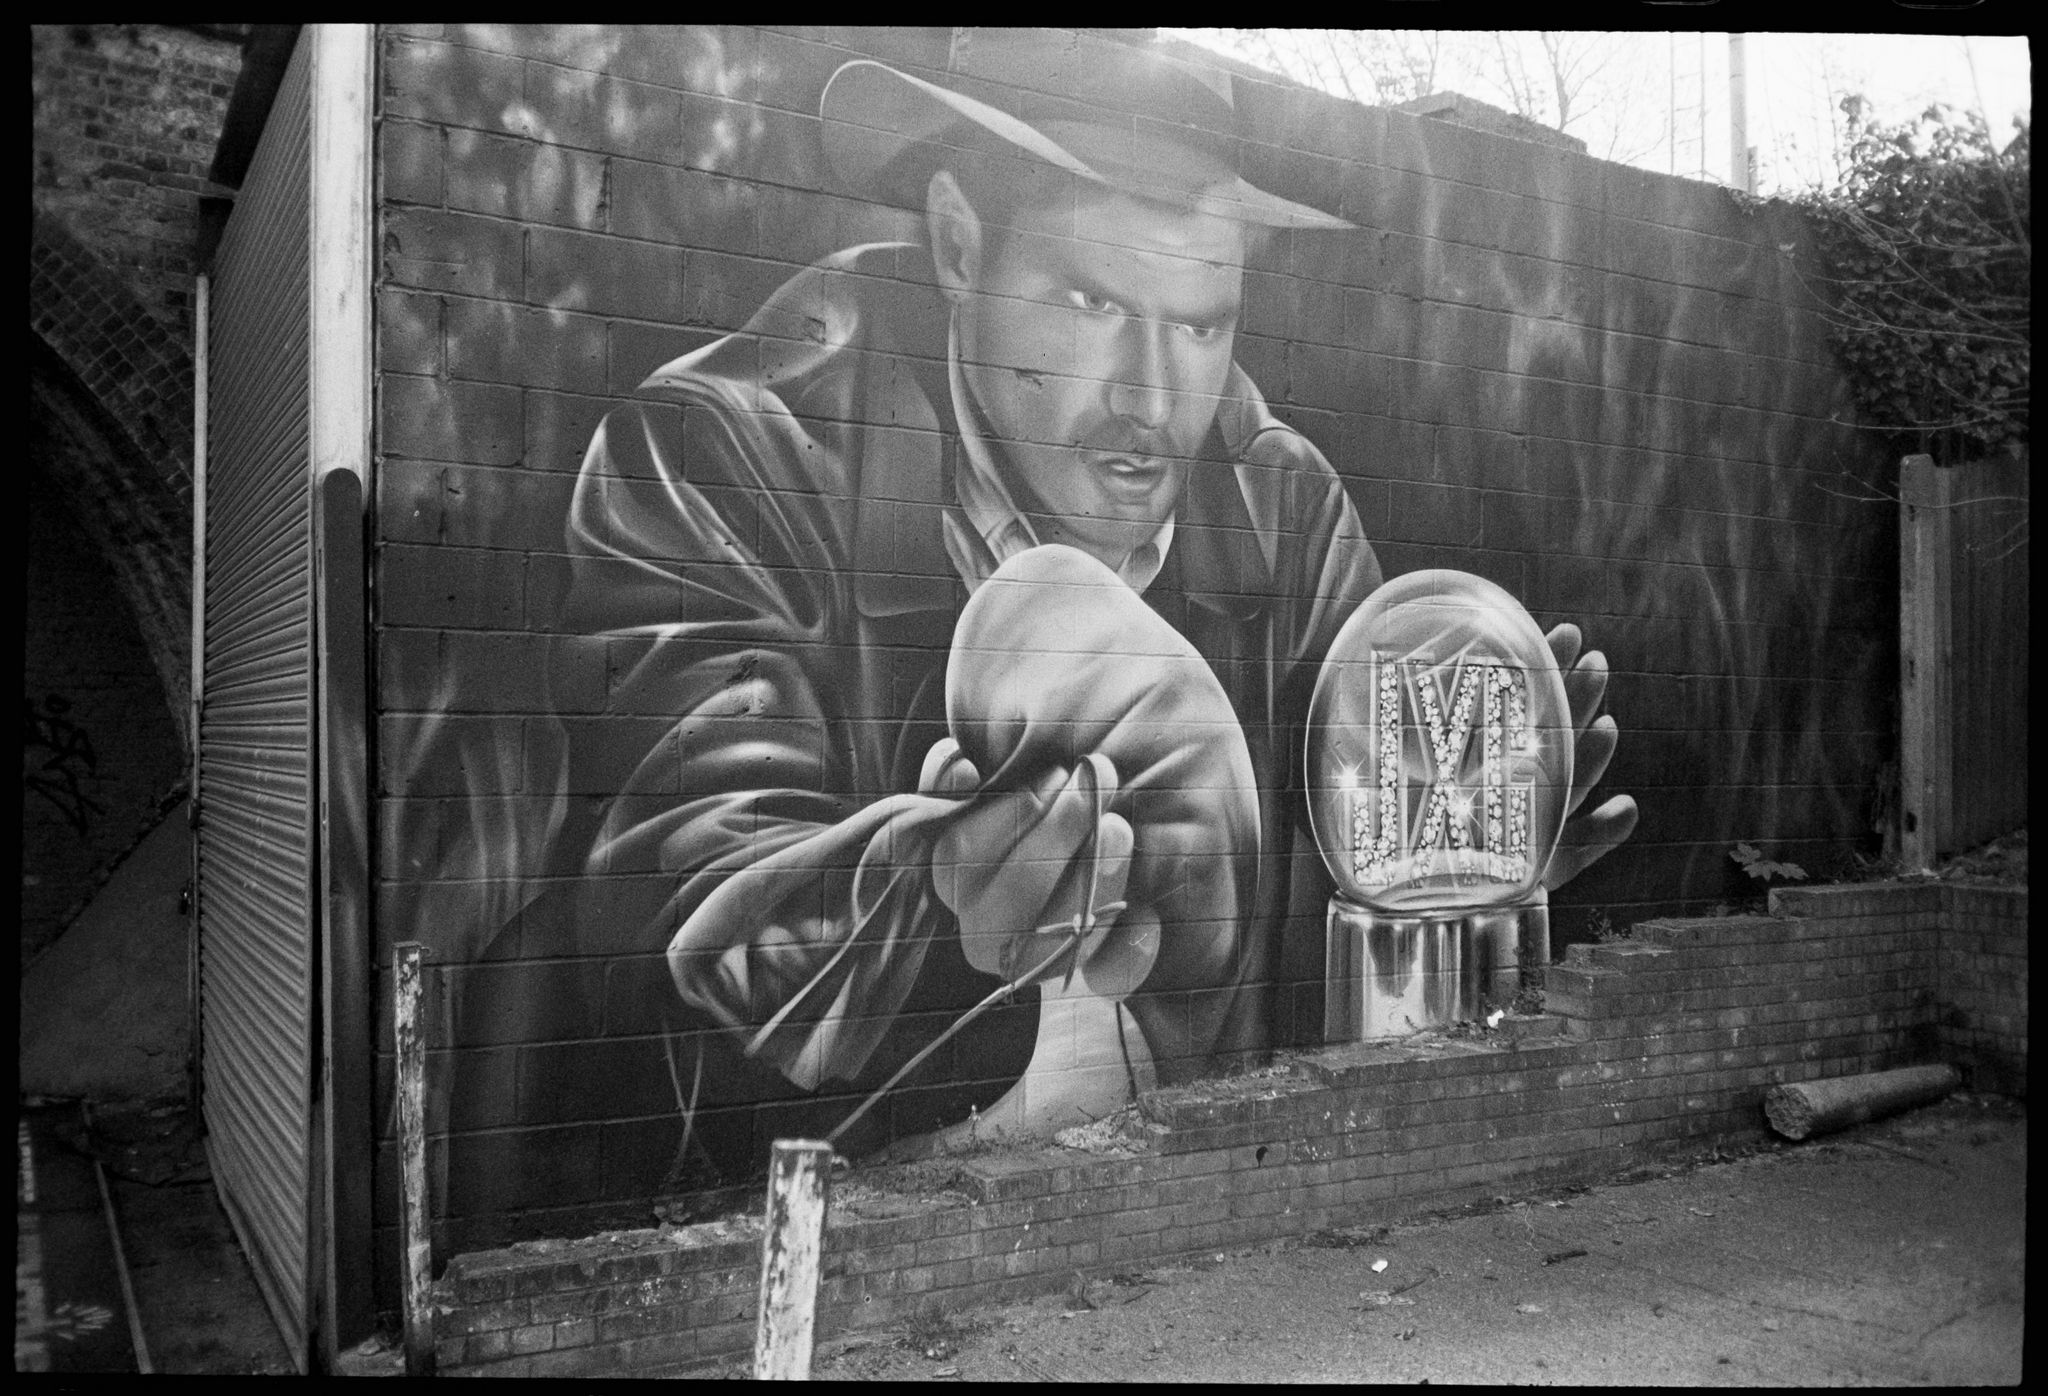 Indiana Jones mural (Pic: Andy Clad)